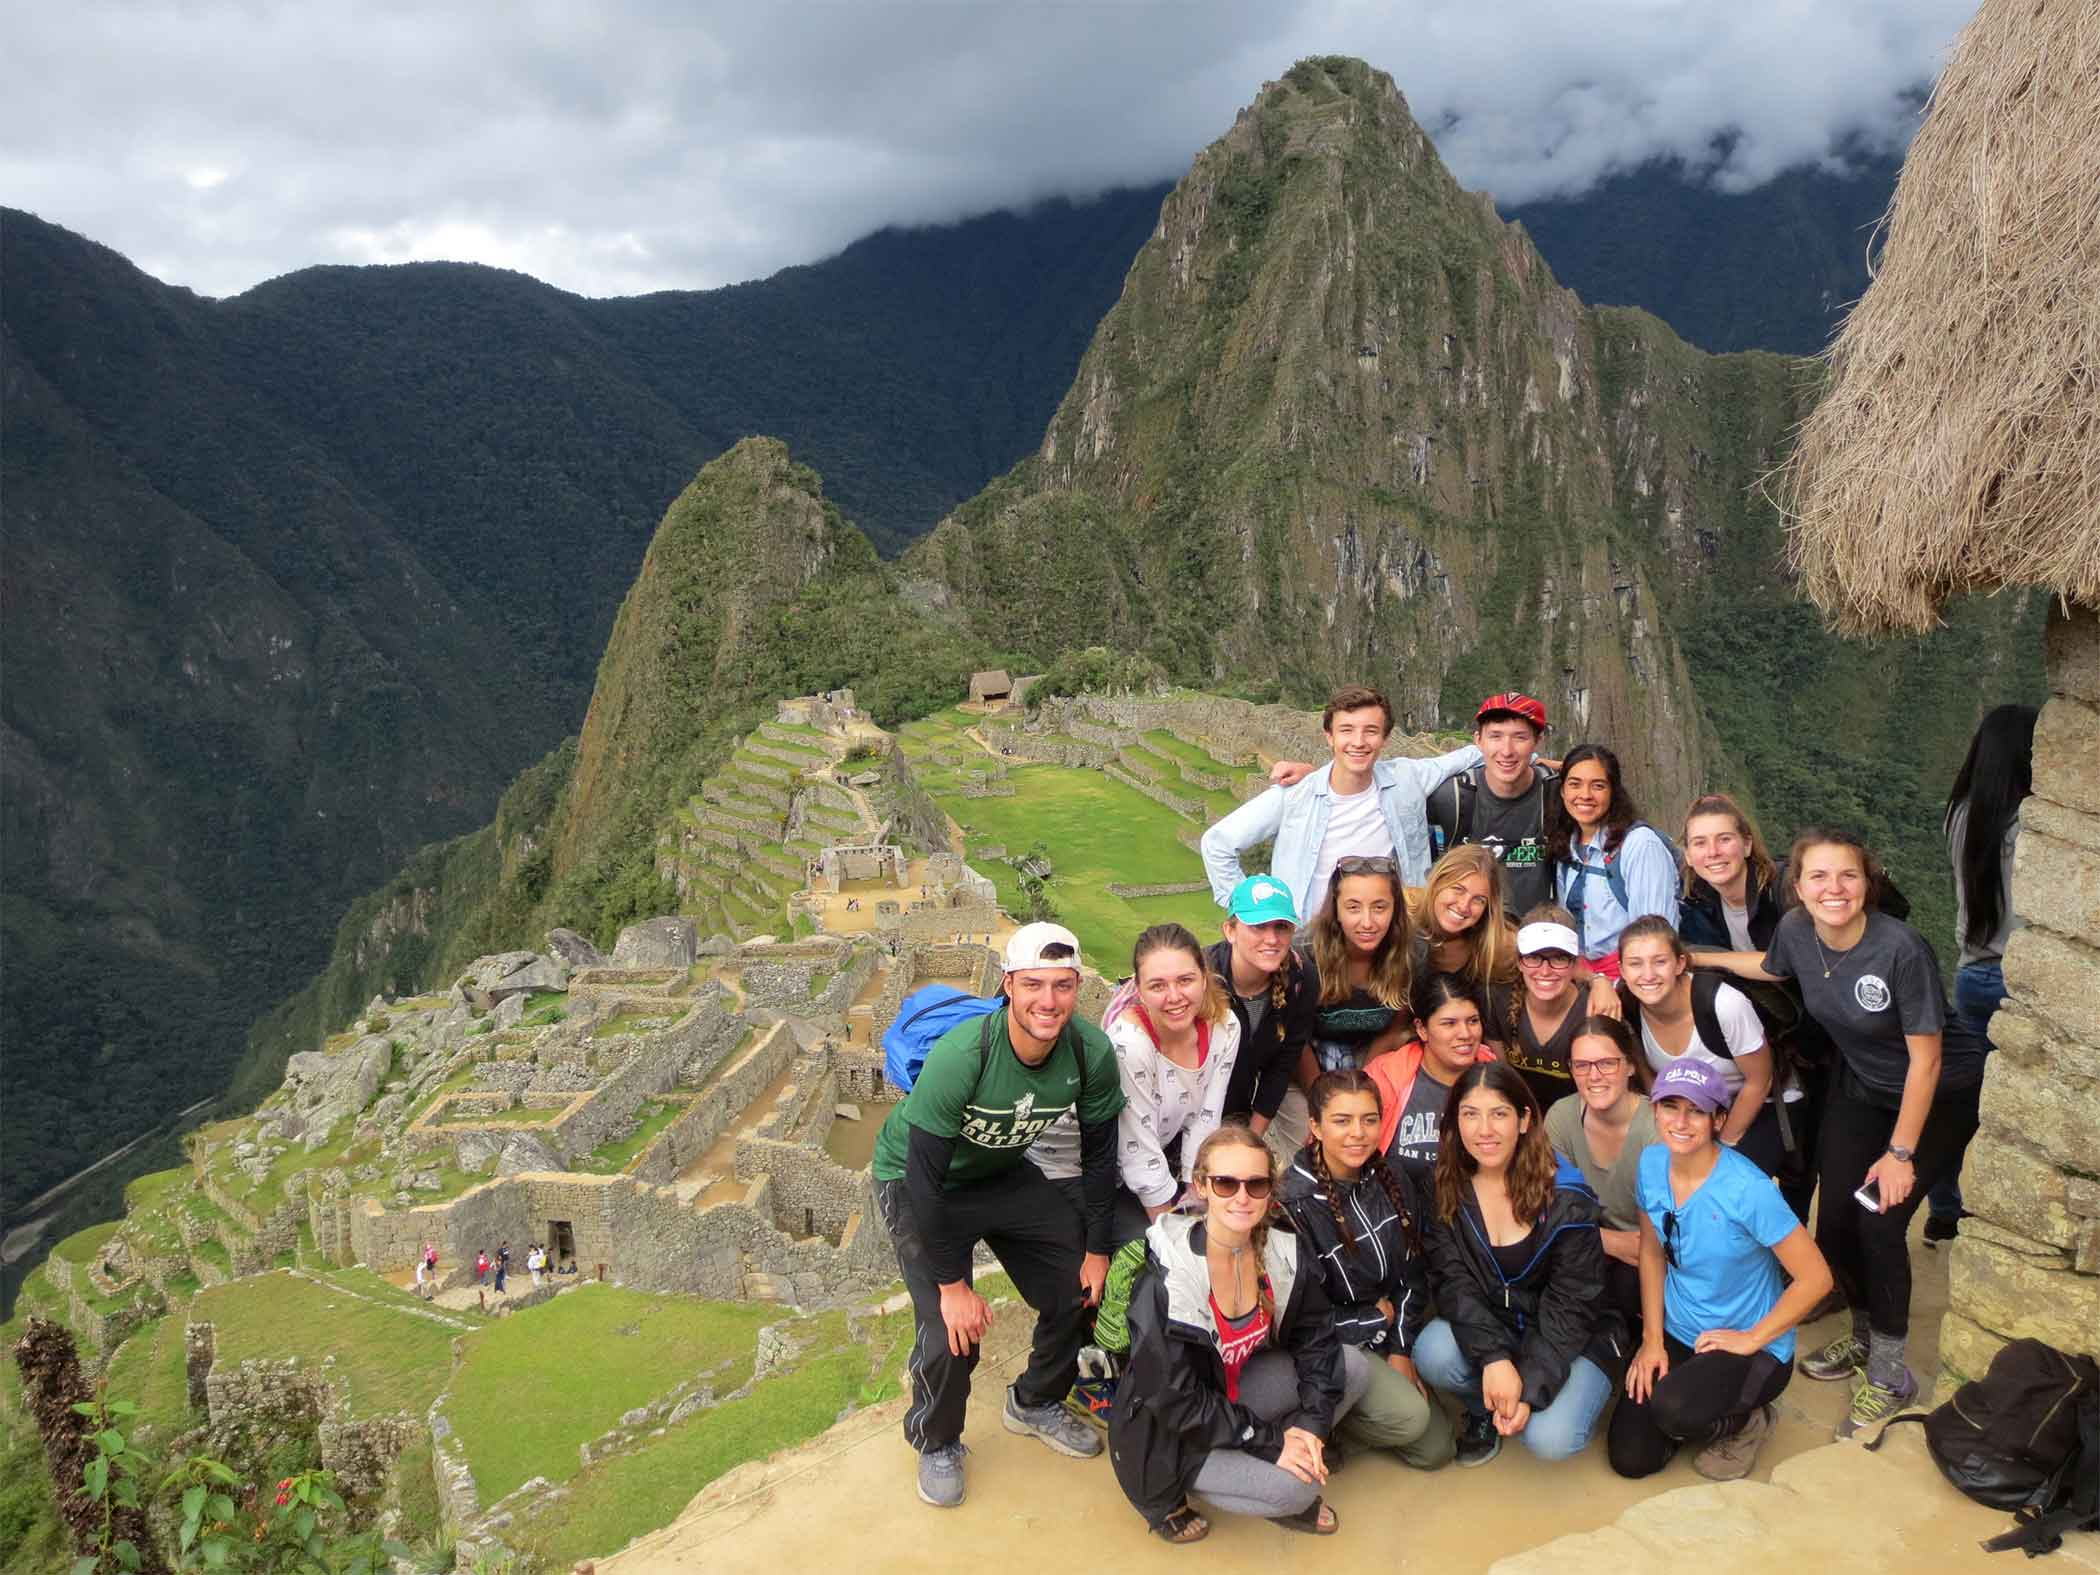 Cal Poly students visit the Incan ruins at Machu Picchu, which dates to the 15th century, during a Study Abroad session in Peru.